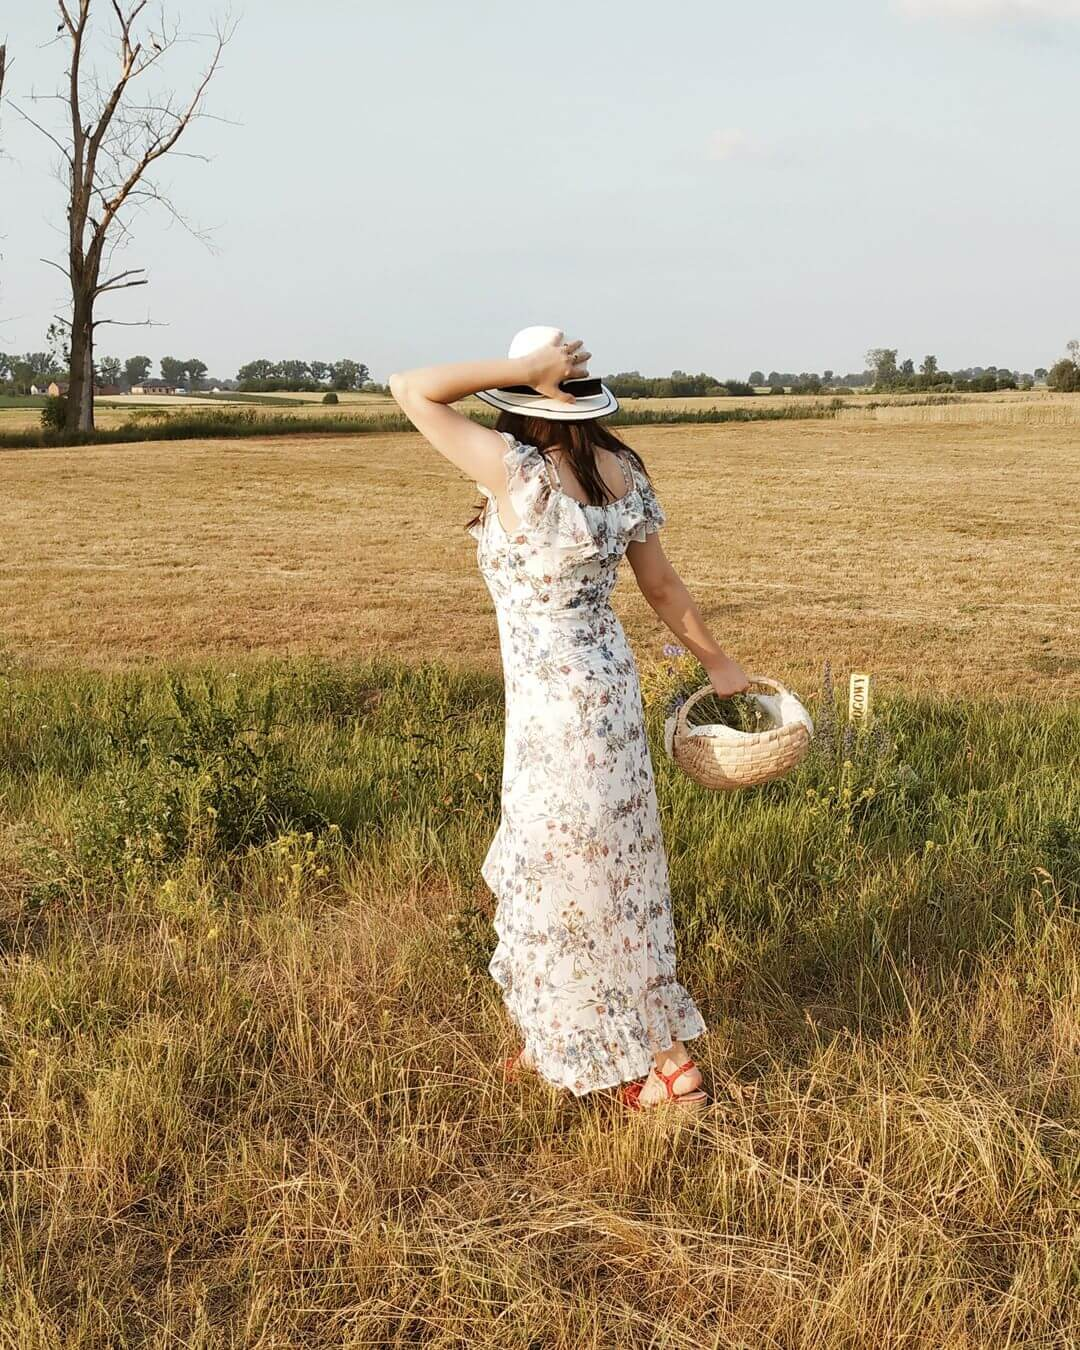 TAKE ME TO THE SUMMER FIELDS